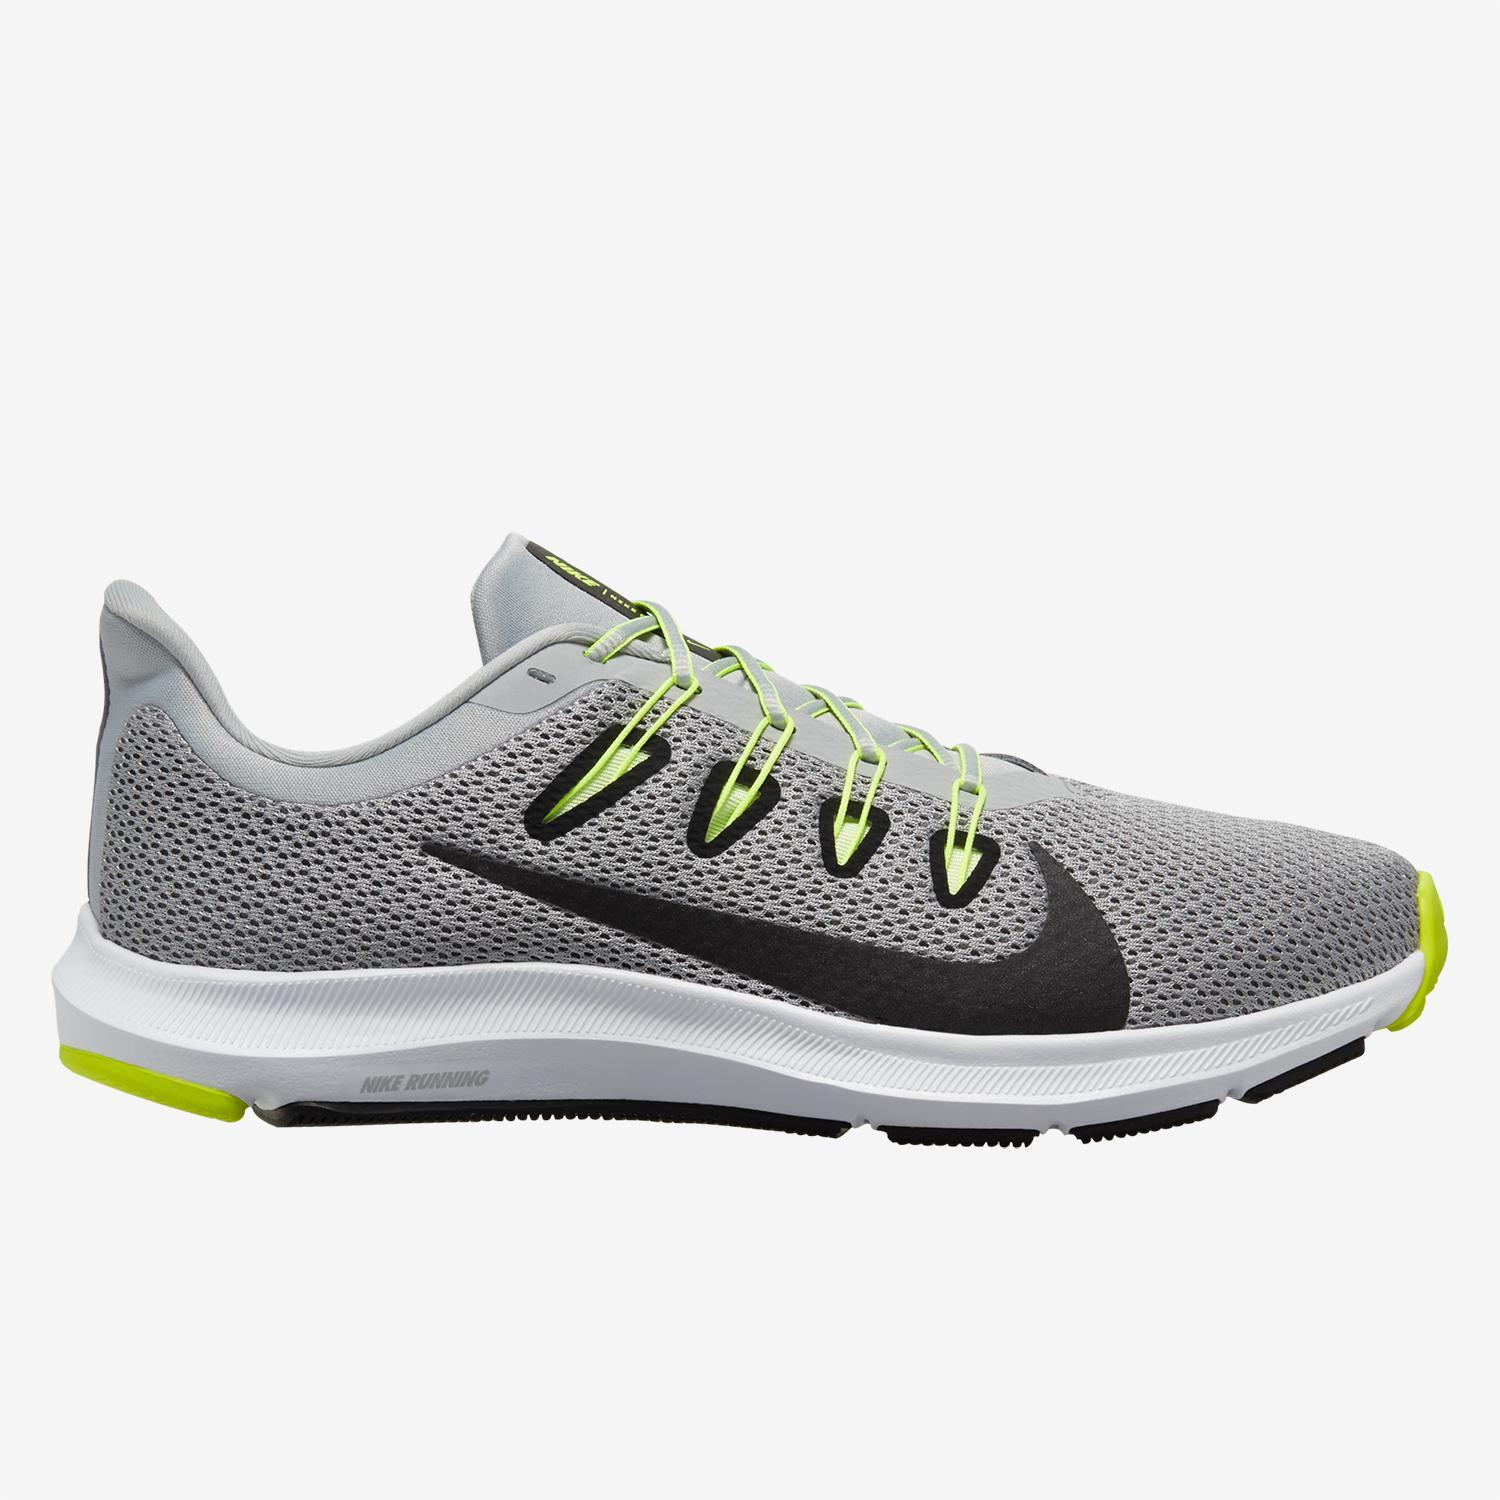 Nike Quest 2 - Grises - Zapatillas Running Hombre